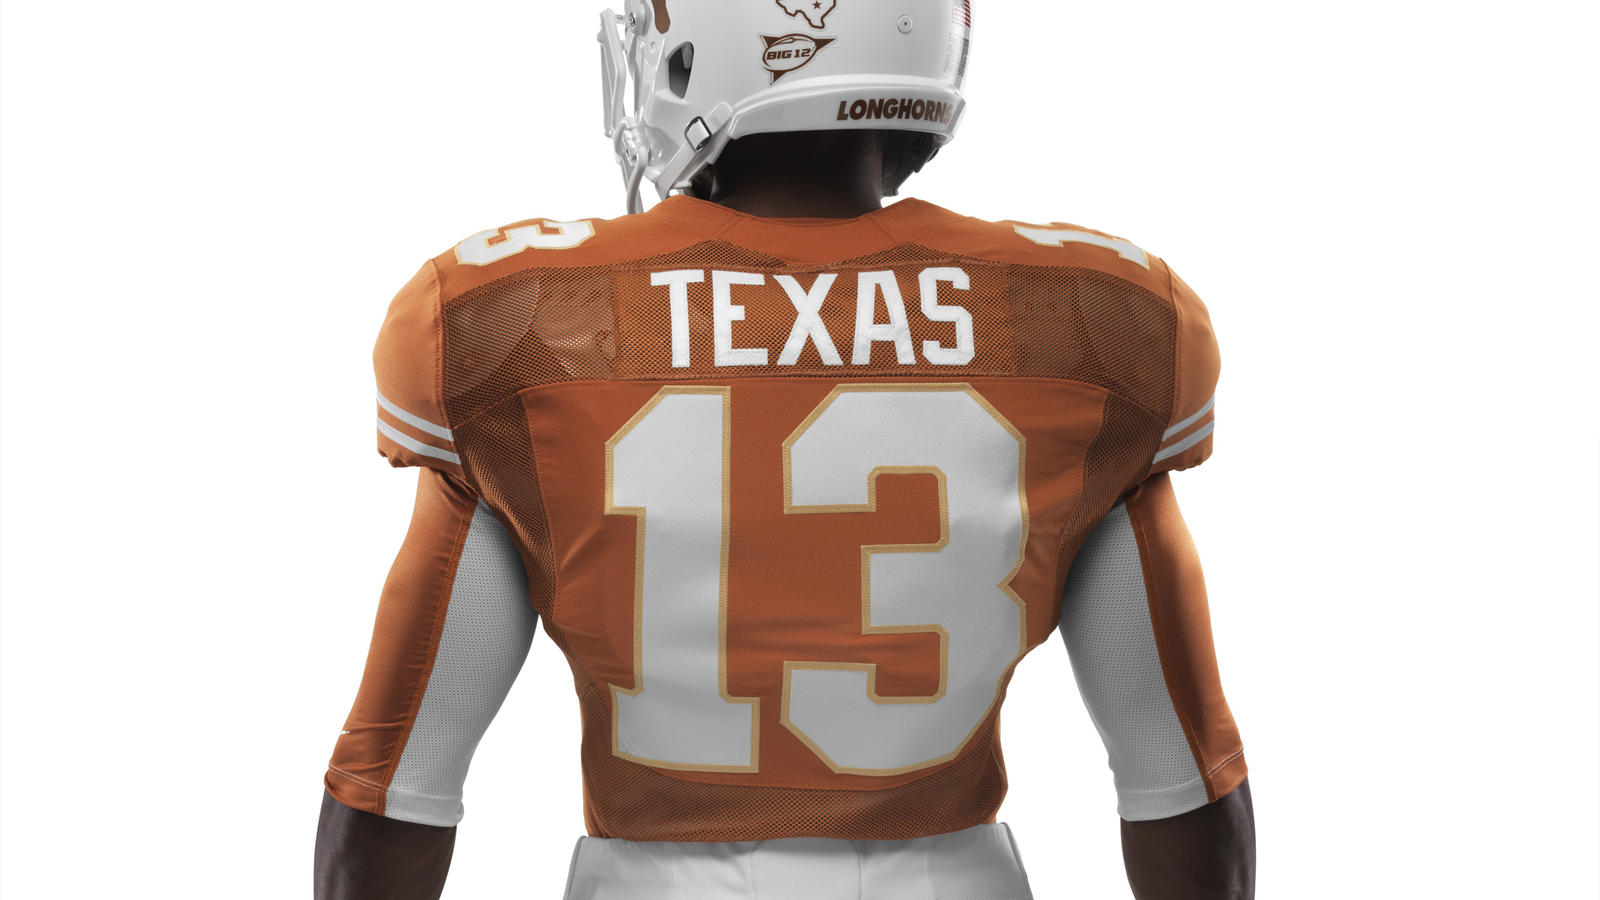 Ncaa Fb13 Uniforms Texas Waisttohelmet 0059